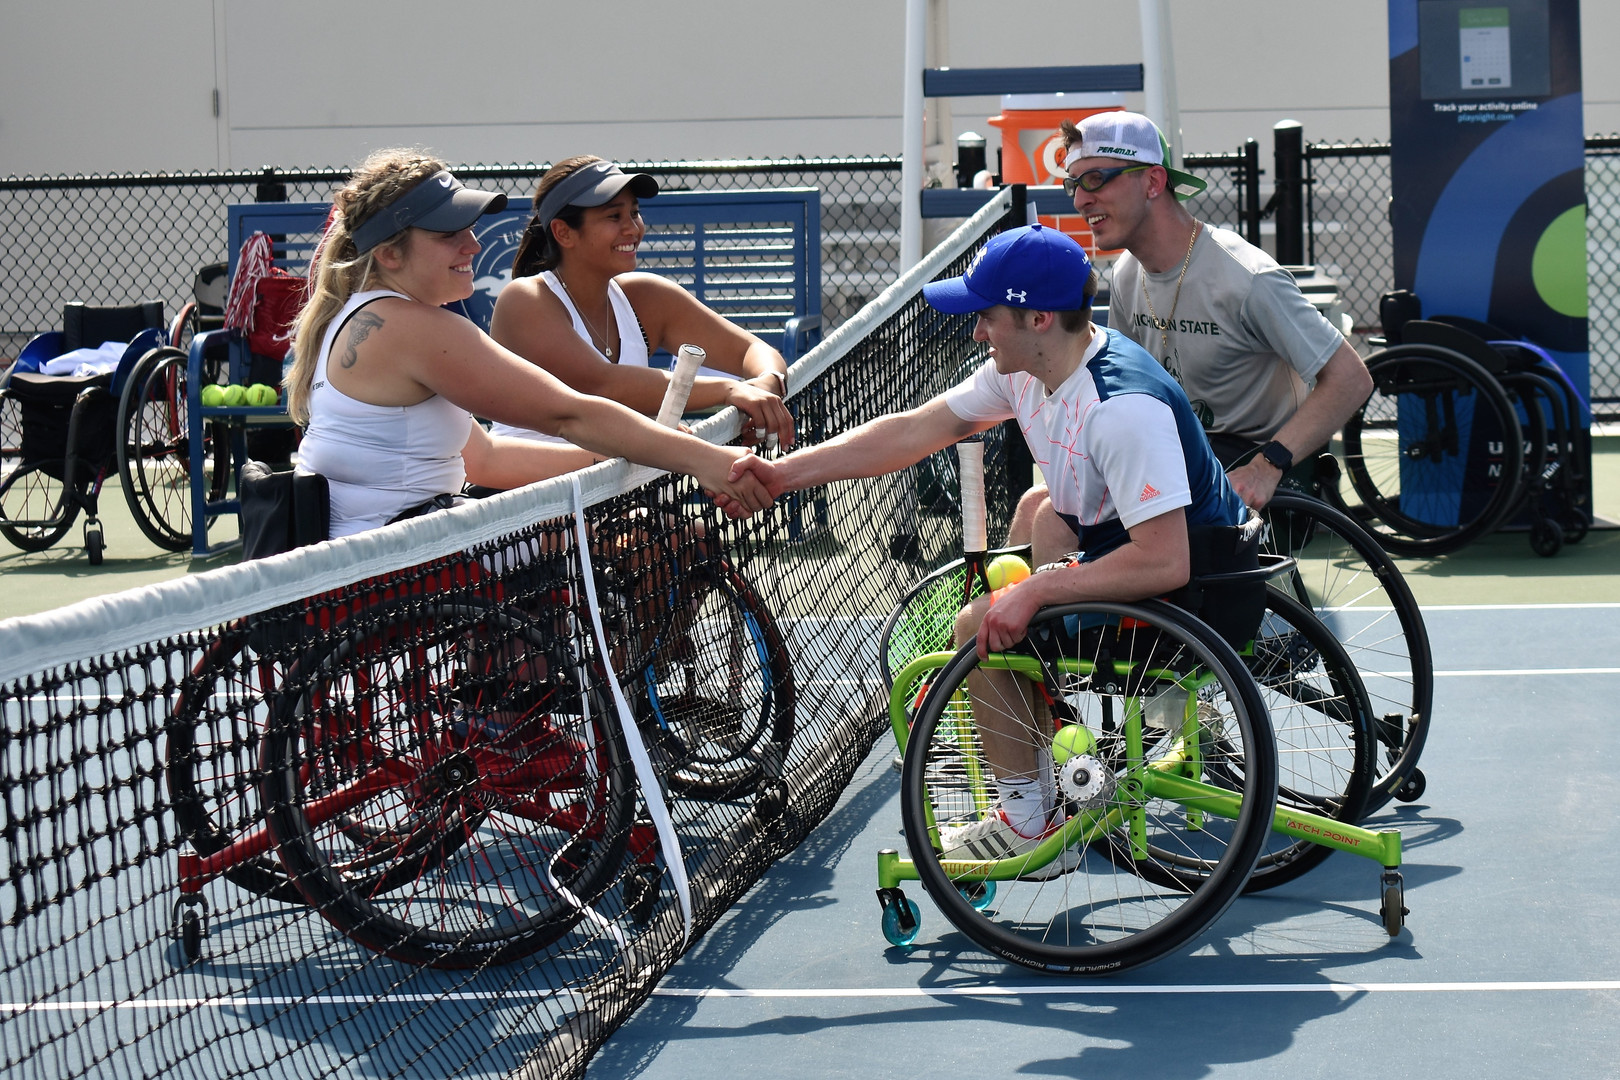 National Collegiate Wheelchair Tennis Championships, Orlando, Fla. - April 2018